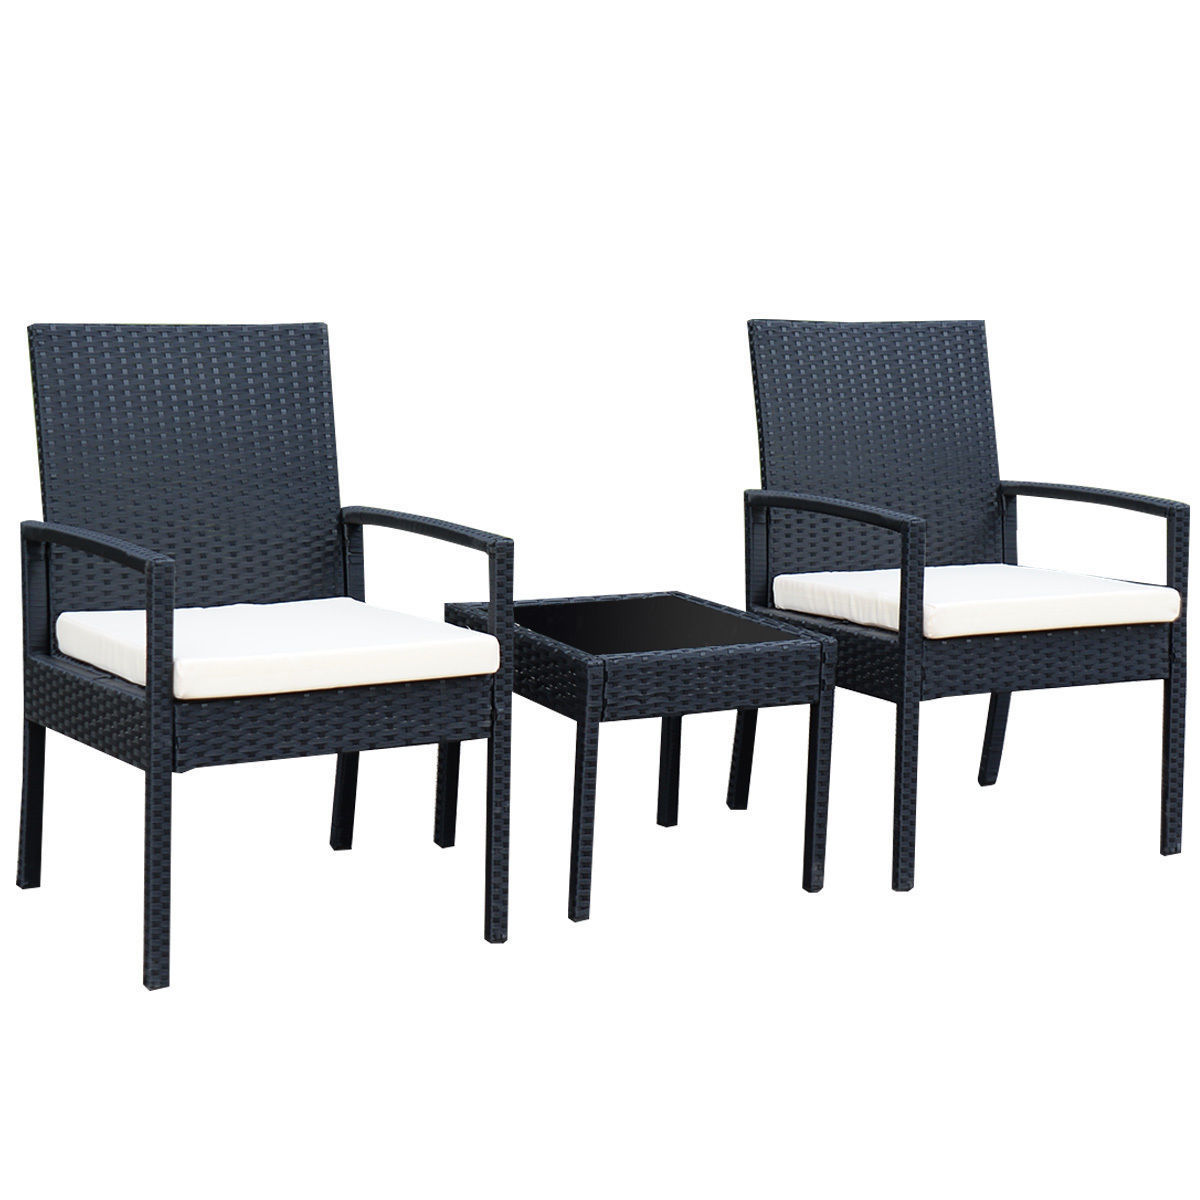 GHP Set of 3 Rattan & Steel Outdoor Wicker Coffee Table w 2 Cushioned Chairs & Armrest